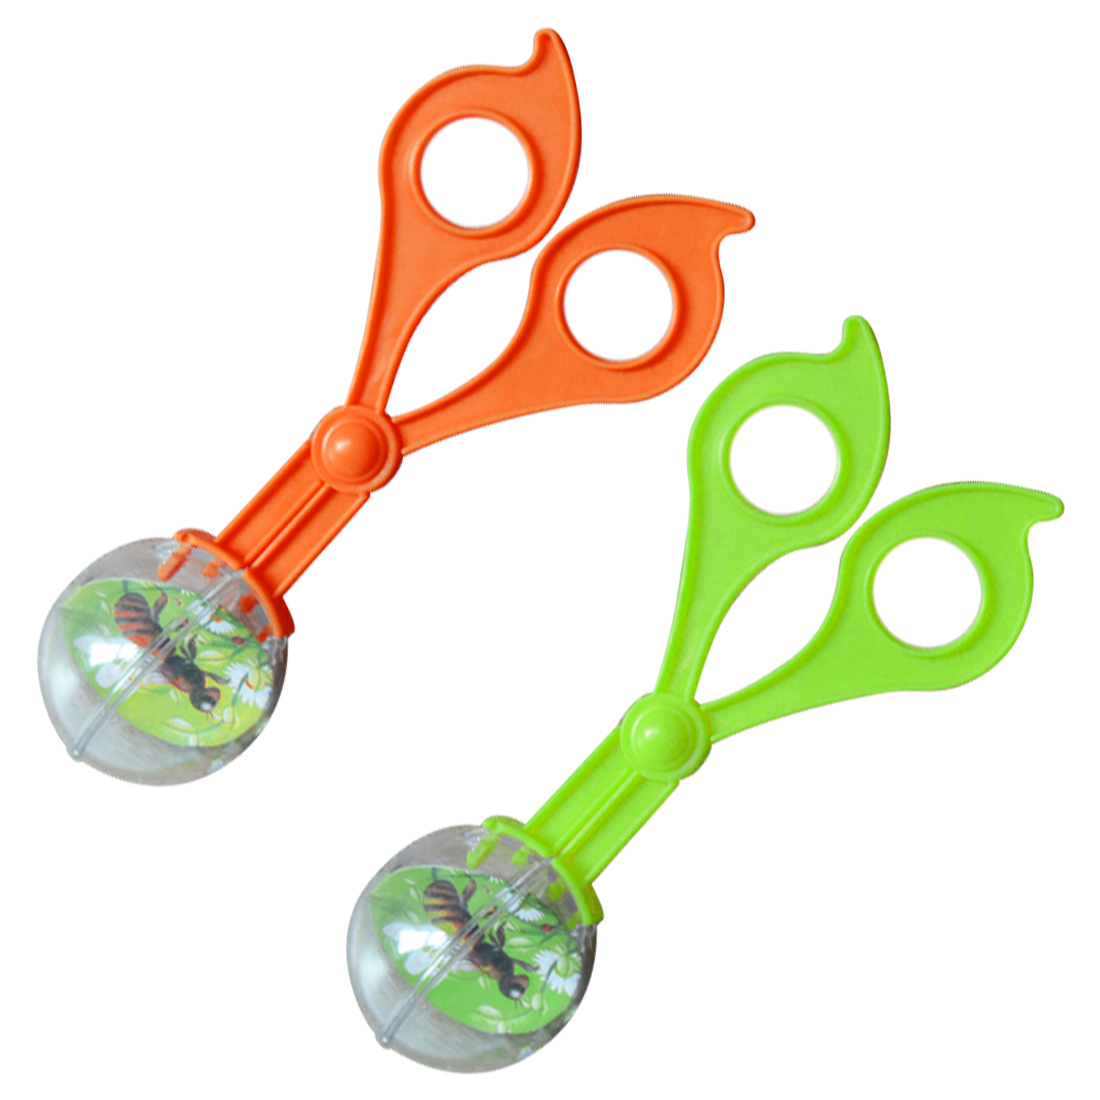 Insect Catcher Scissors Insect Trap Plastic Bug  Tongs Tweezers For Kids Children Toy Handy